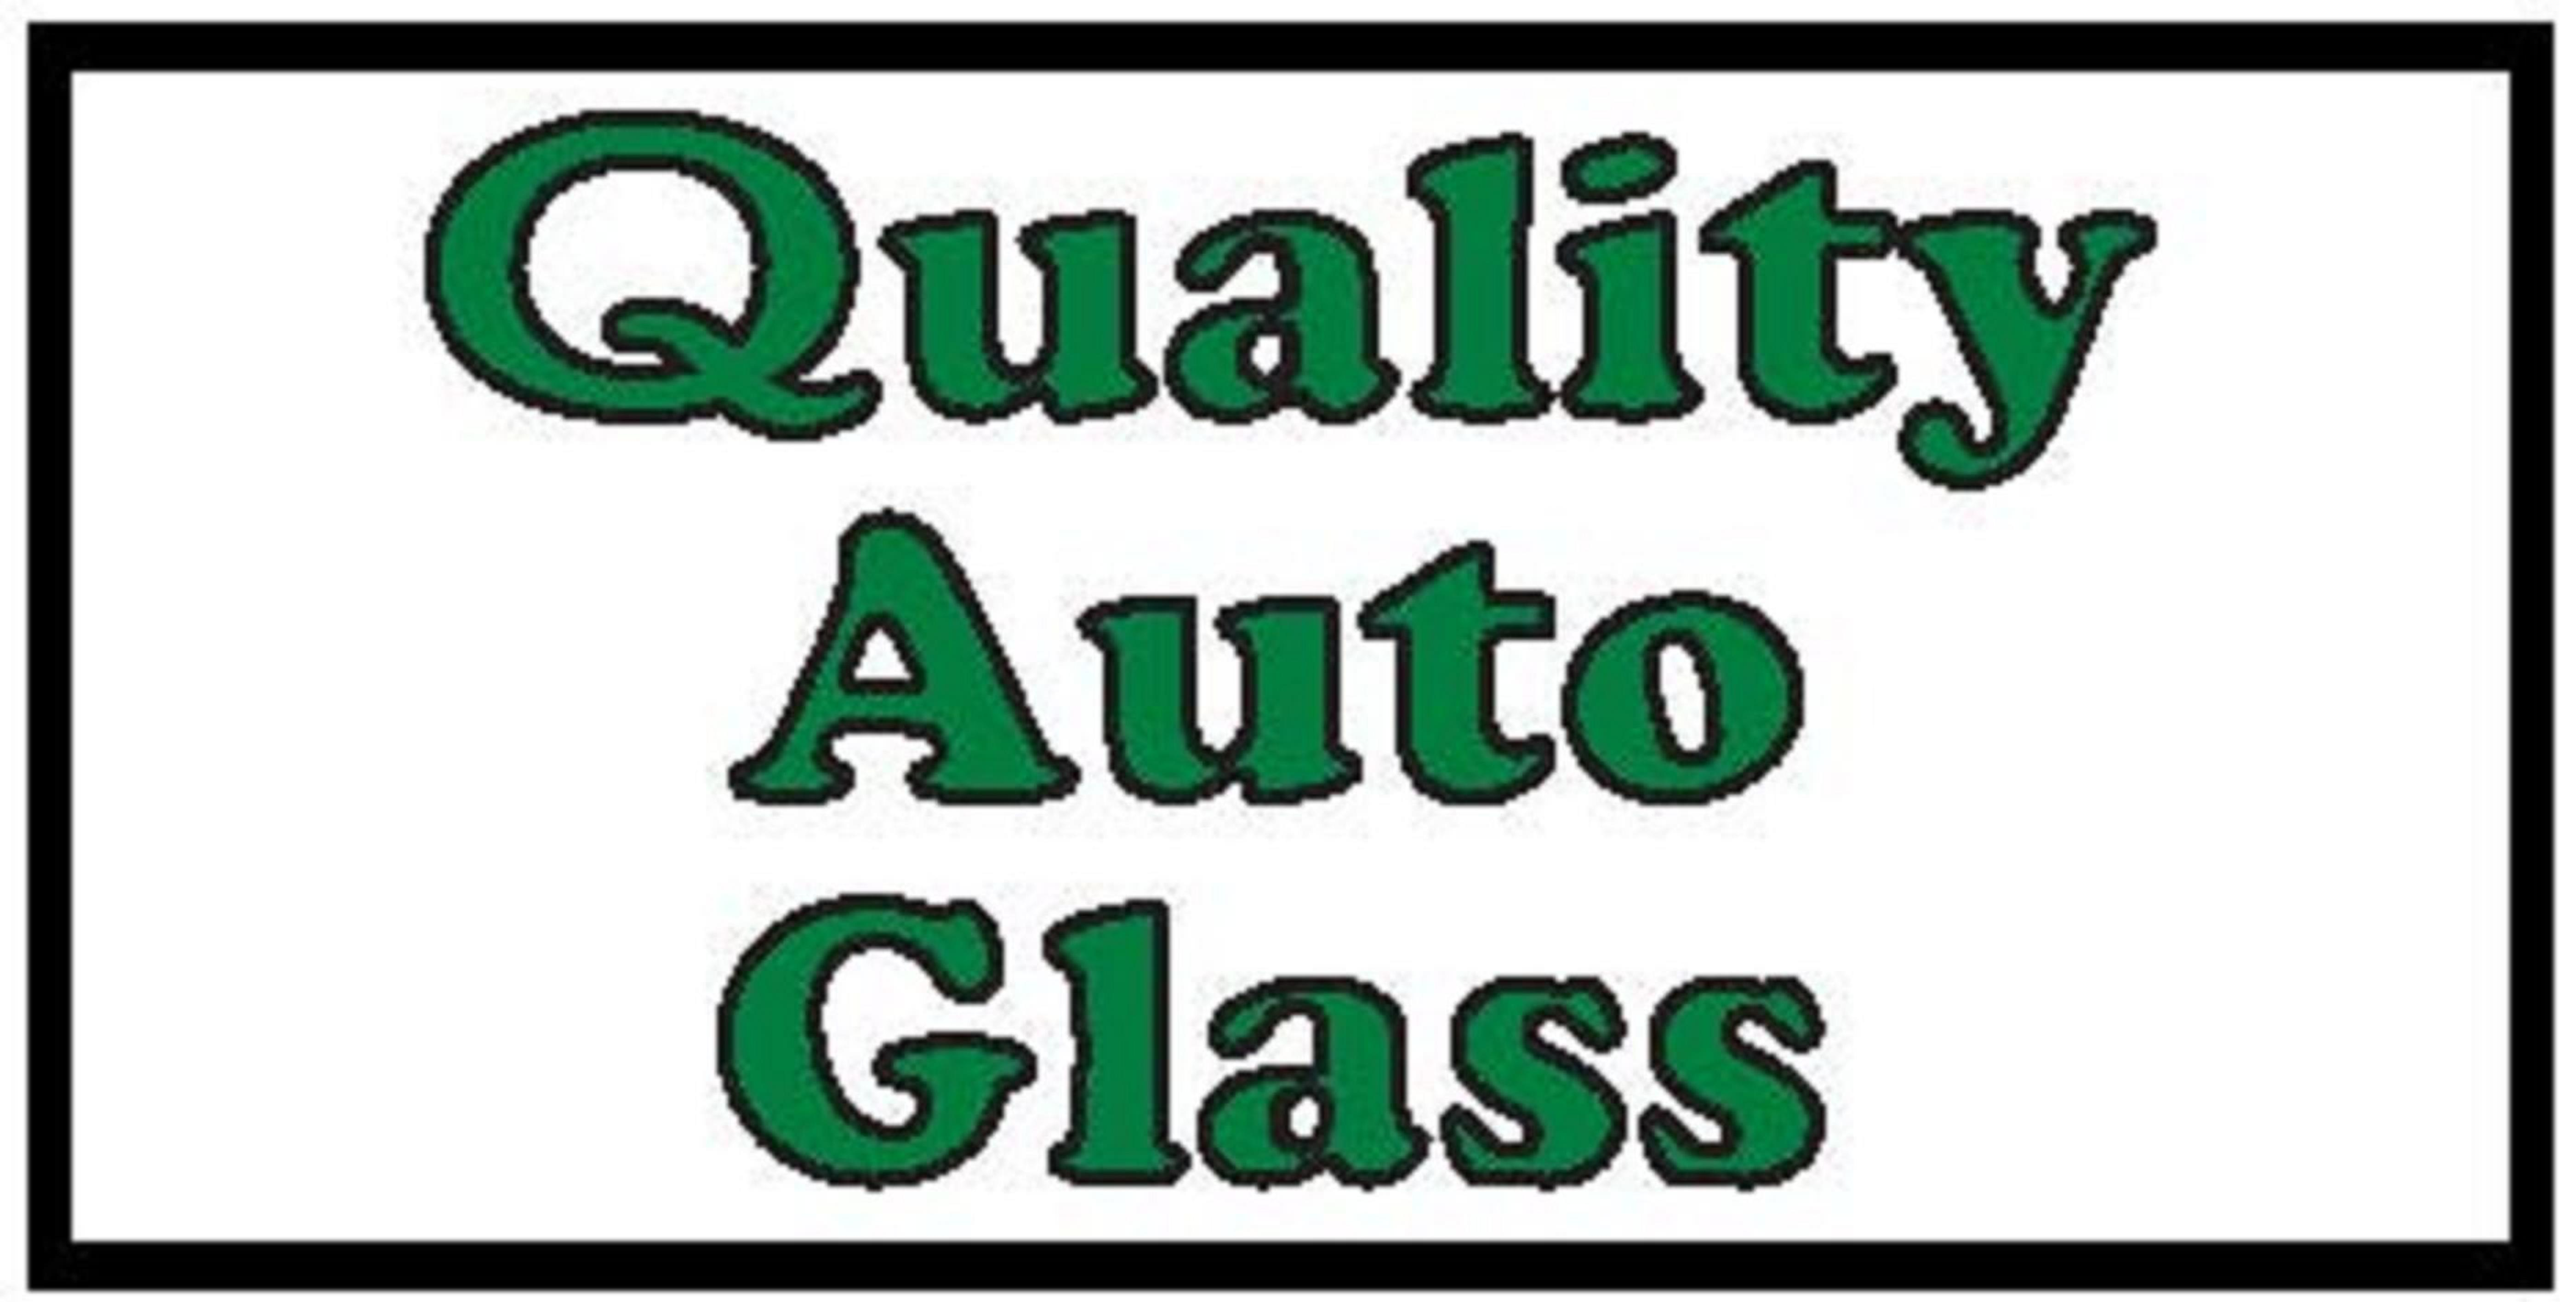 Thick quality glass coupon code